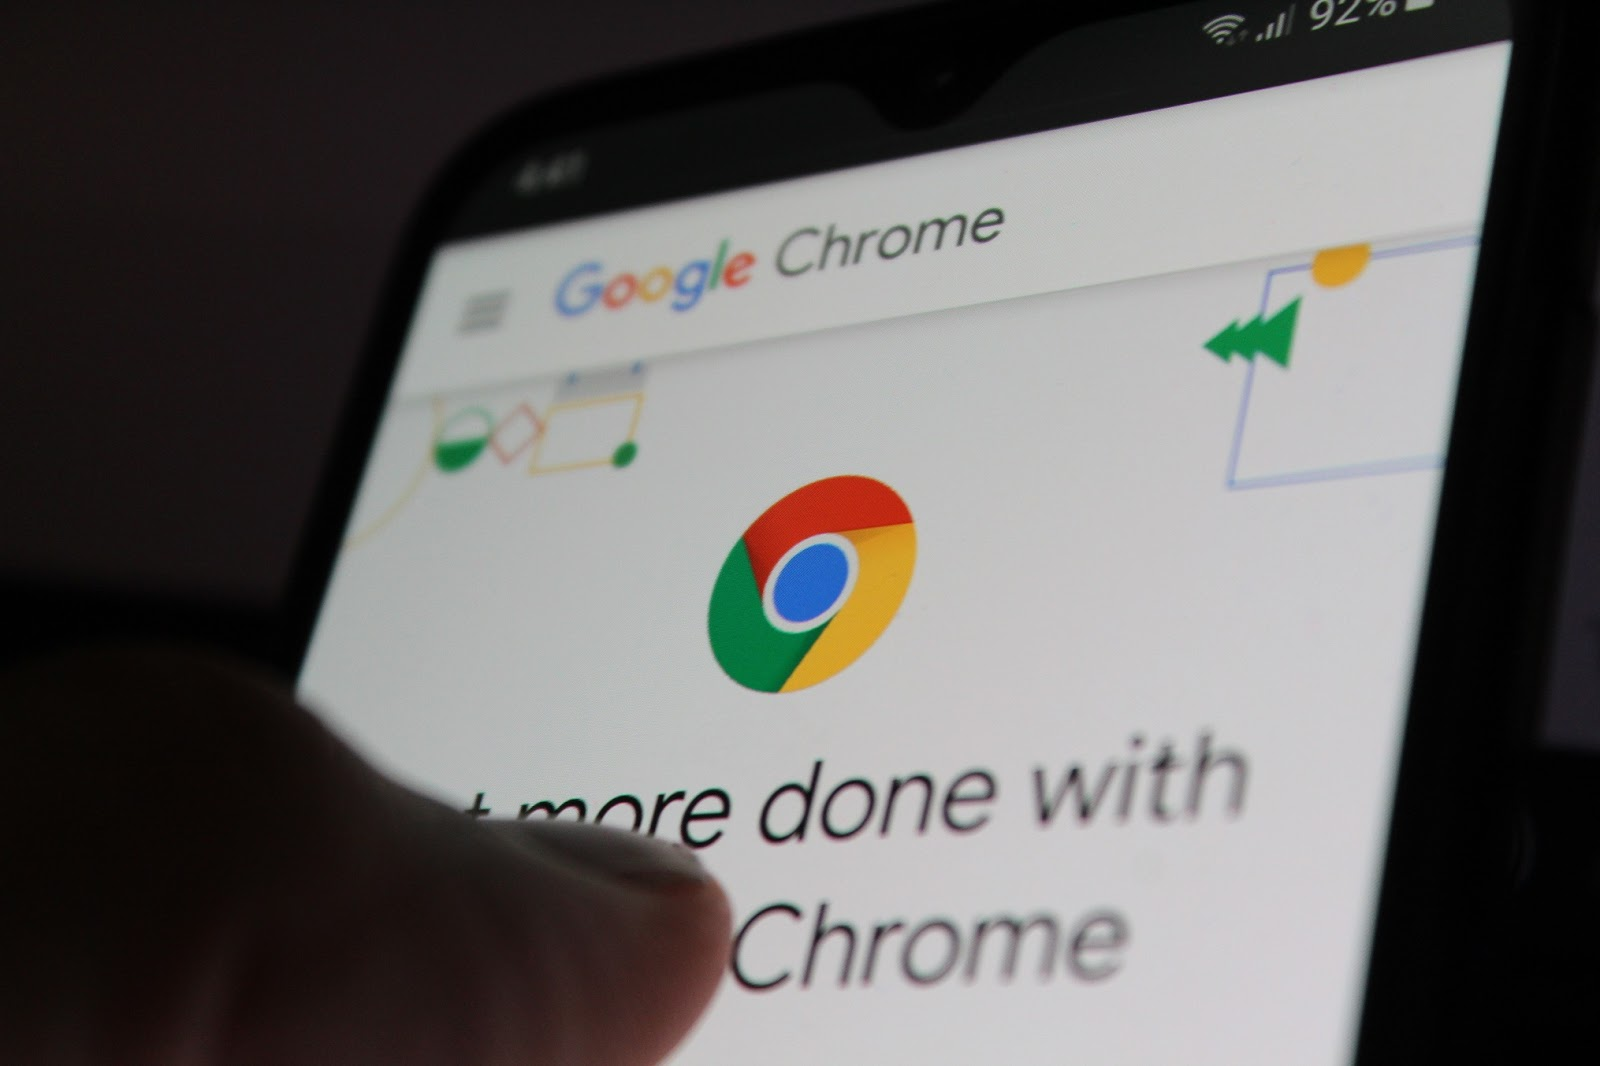 Google launches updates for Chrome 80: Upgrades security, new notifications prompt, and more control for the user